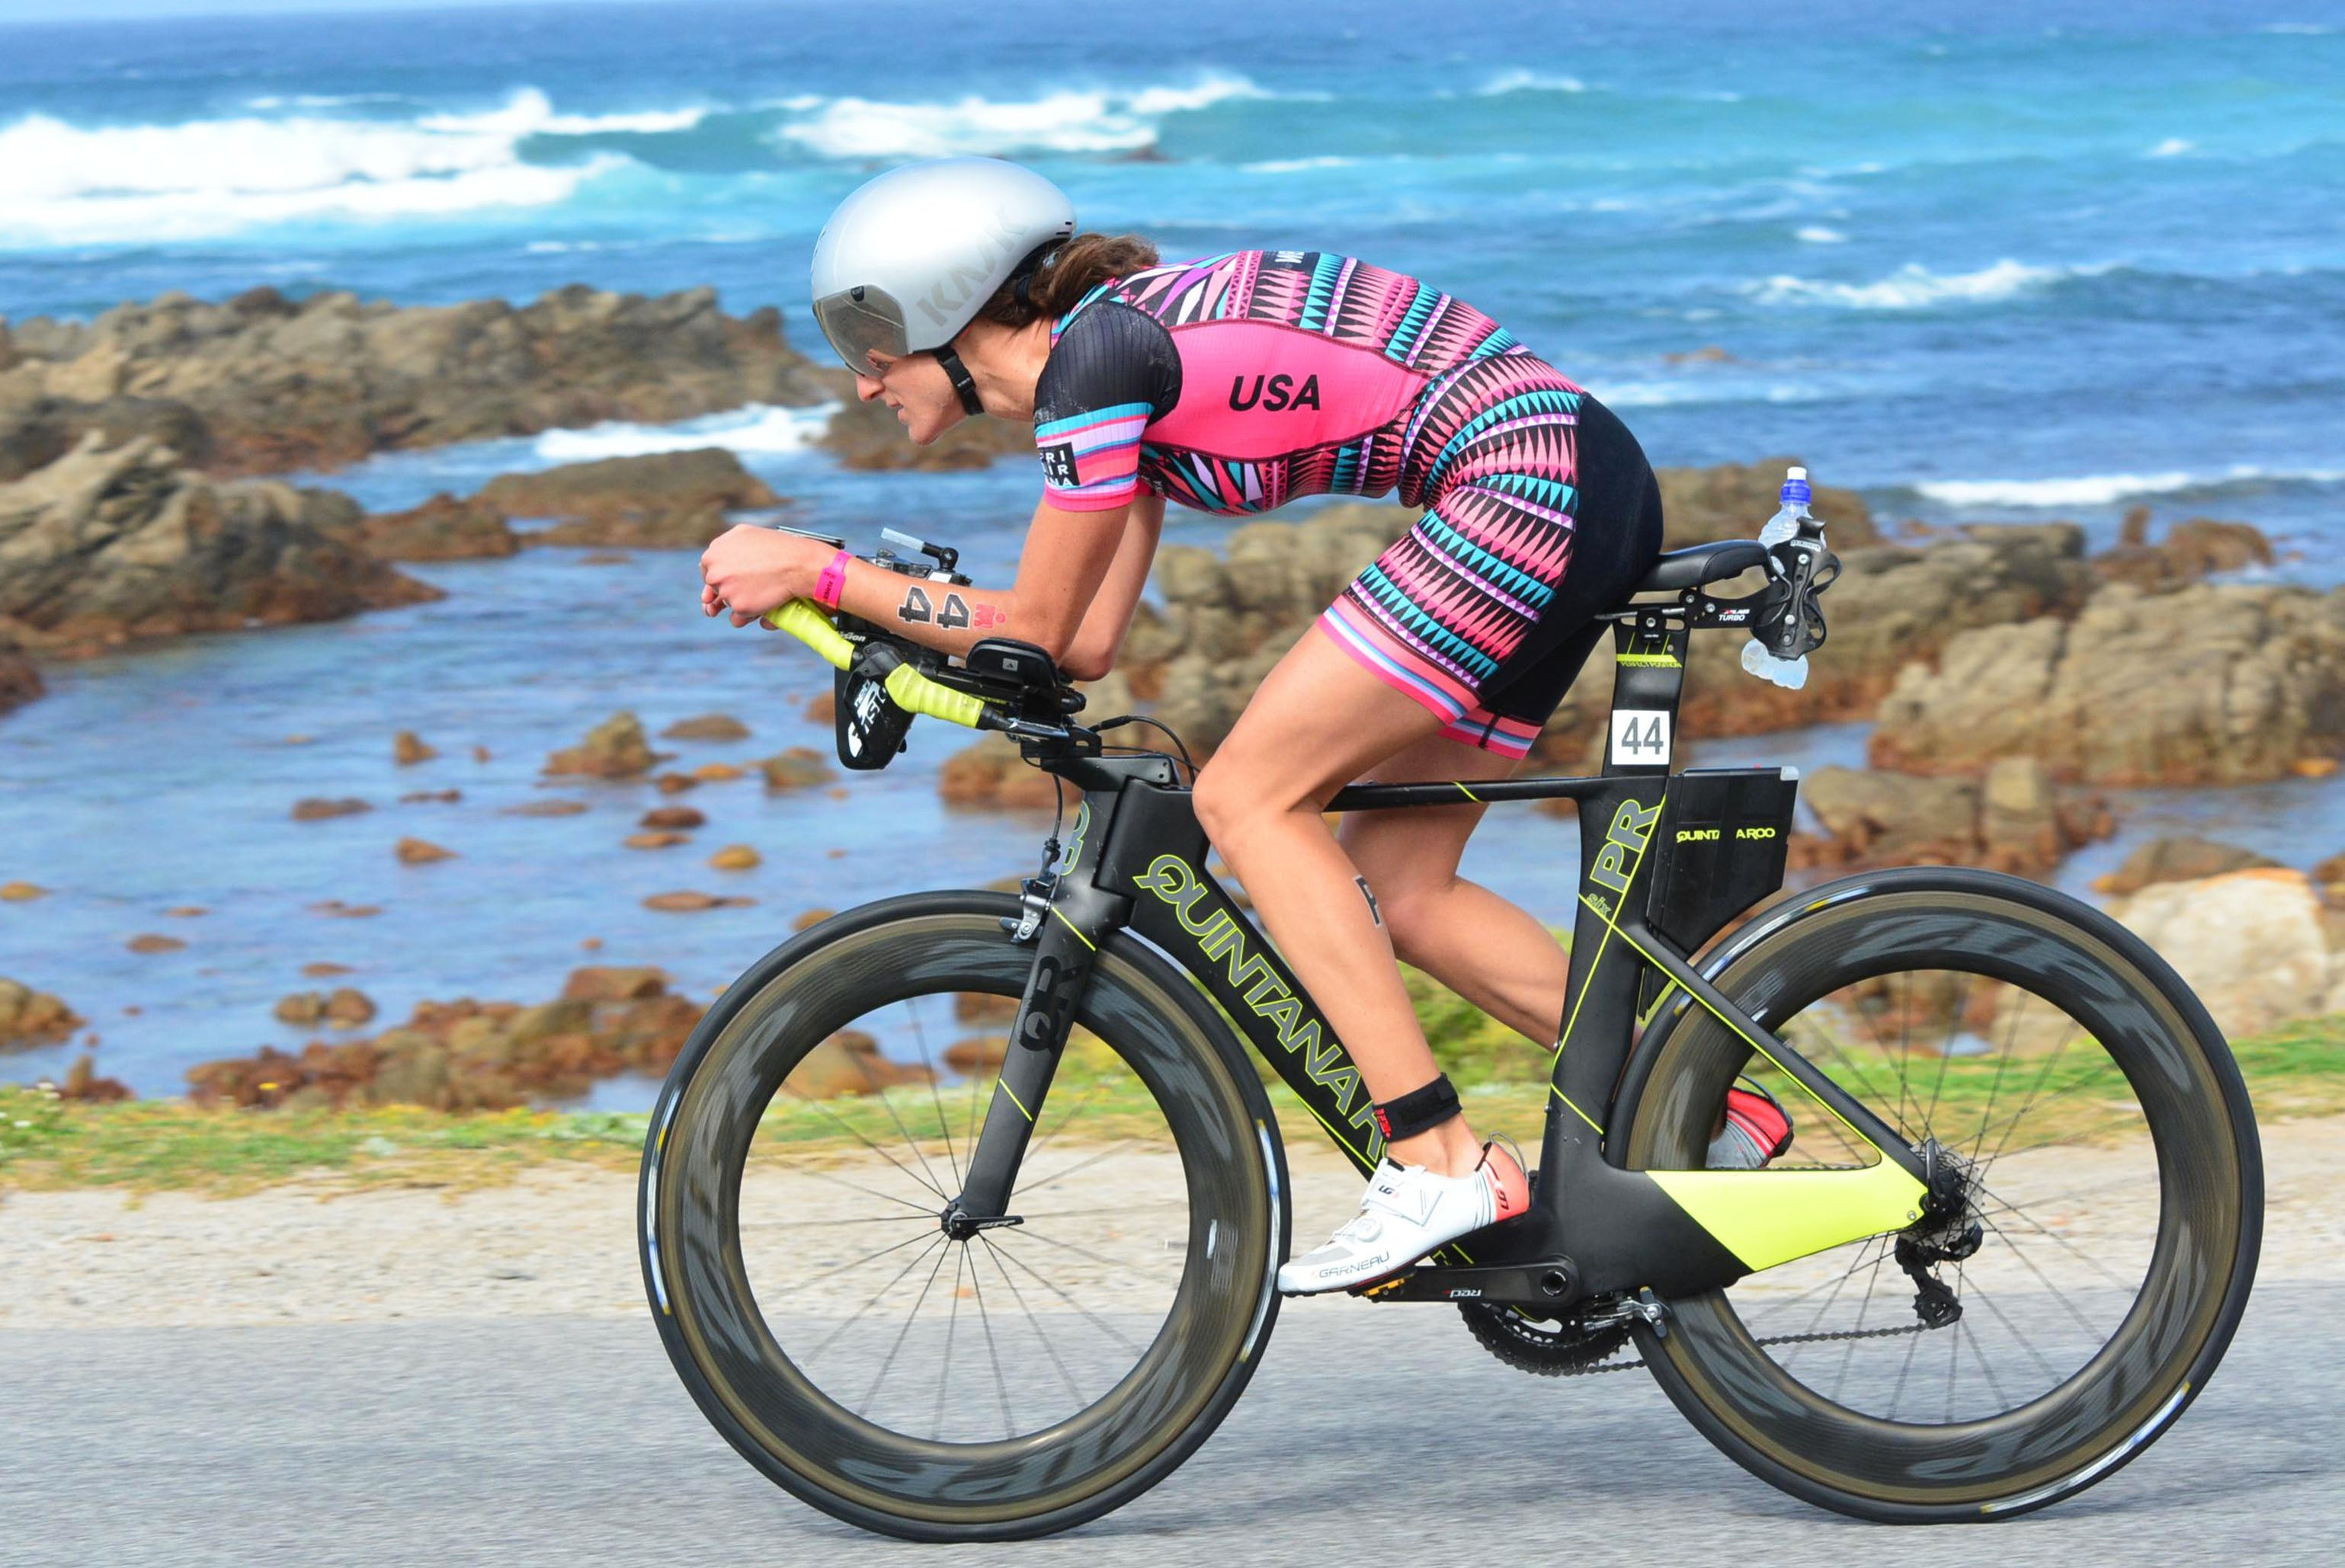 Kyra Wiens Tri Sirena Professional Triathlete Racing World Championships 2018 South Africa Rainbow Nation Aero Skinsuit